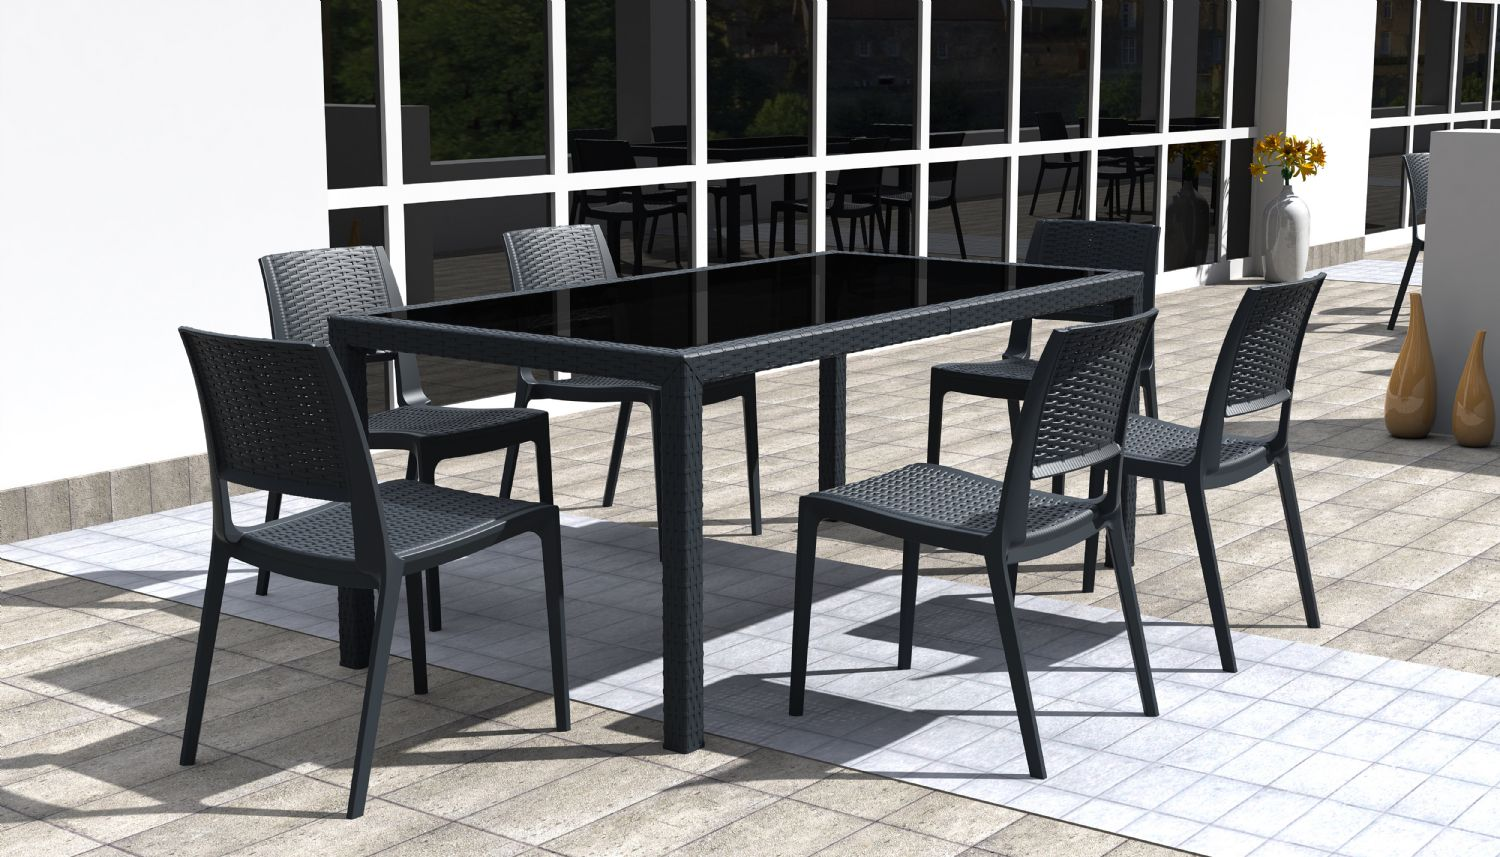 Miami Resin Wickerlook Rectangle Dining Table Brown 71 inch ISP880-BR - 11